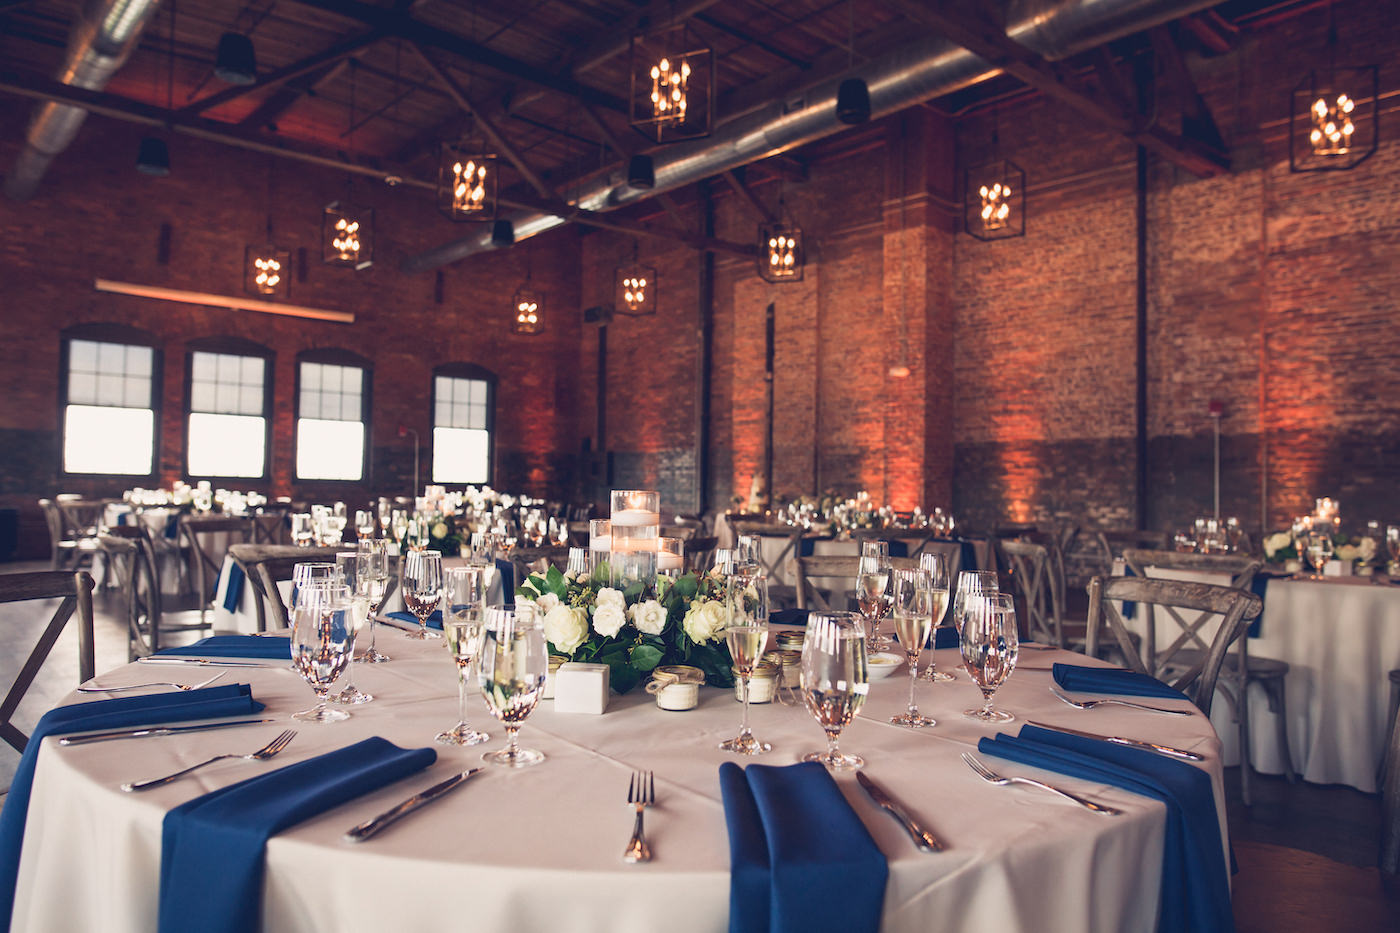 Tampa Wedding Reception Tables With Cobalt Blue Napkins And Greenery Floating Candle Centerpieces In Historic Venue Armature Works Unique Architecture With Brick Walls And Exposed Beam Ceilings With Edison Bulb Chandeliers